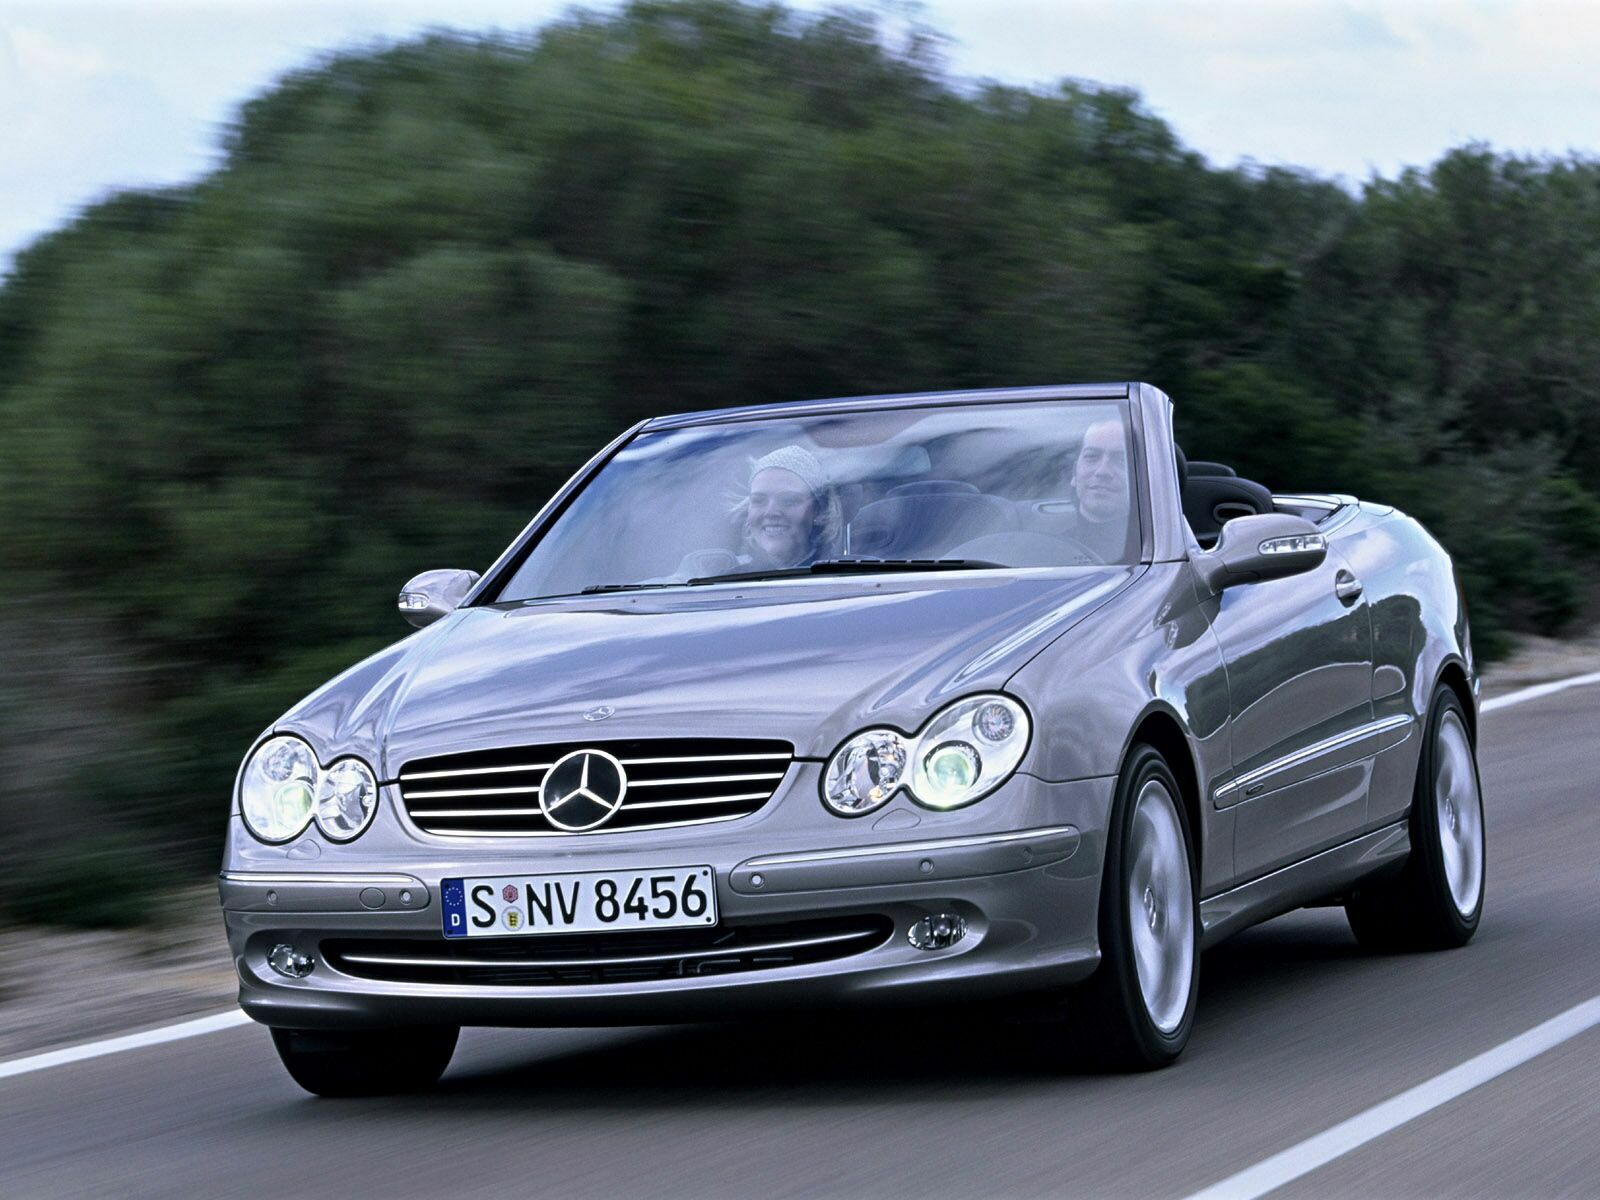 Mercedes benz clk cabriolet picture 11089 mercedes for Mercedes benz clk 500